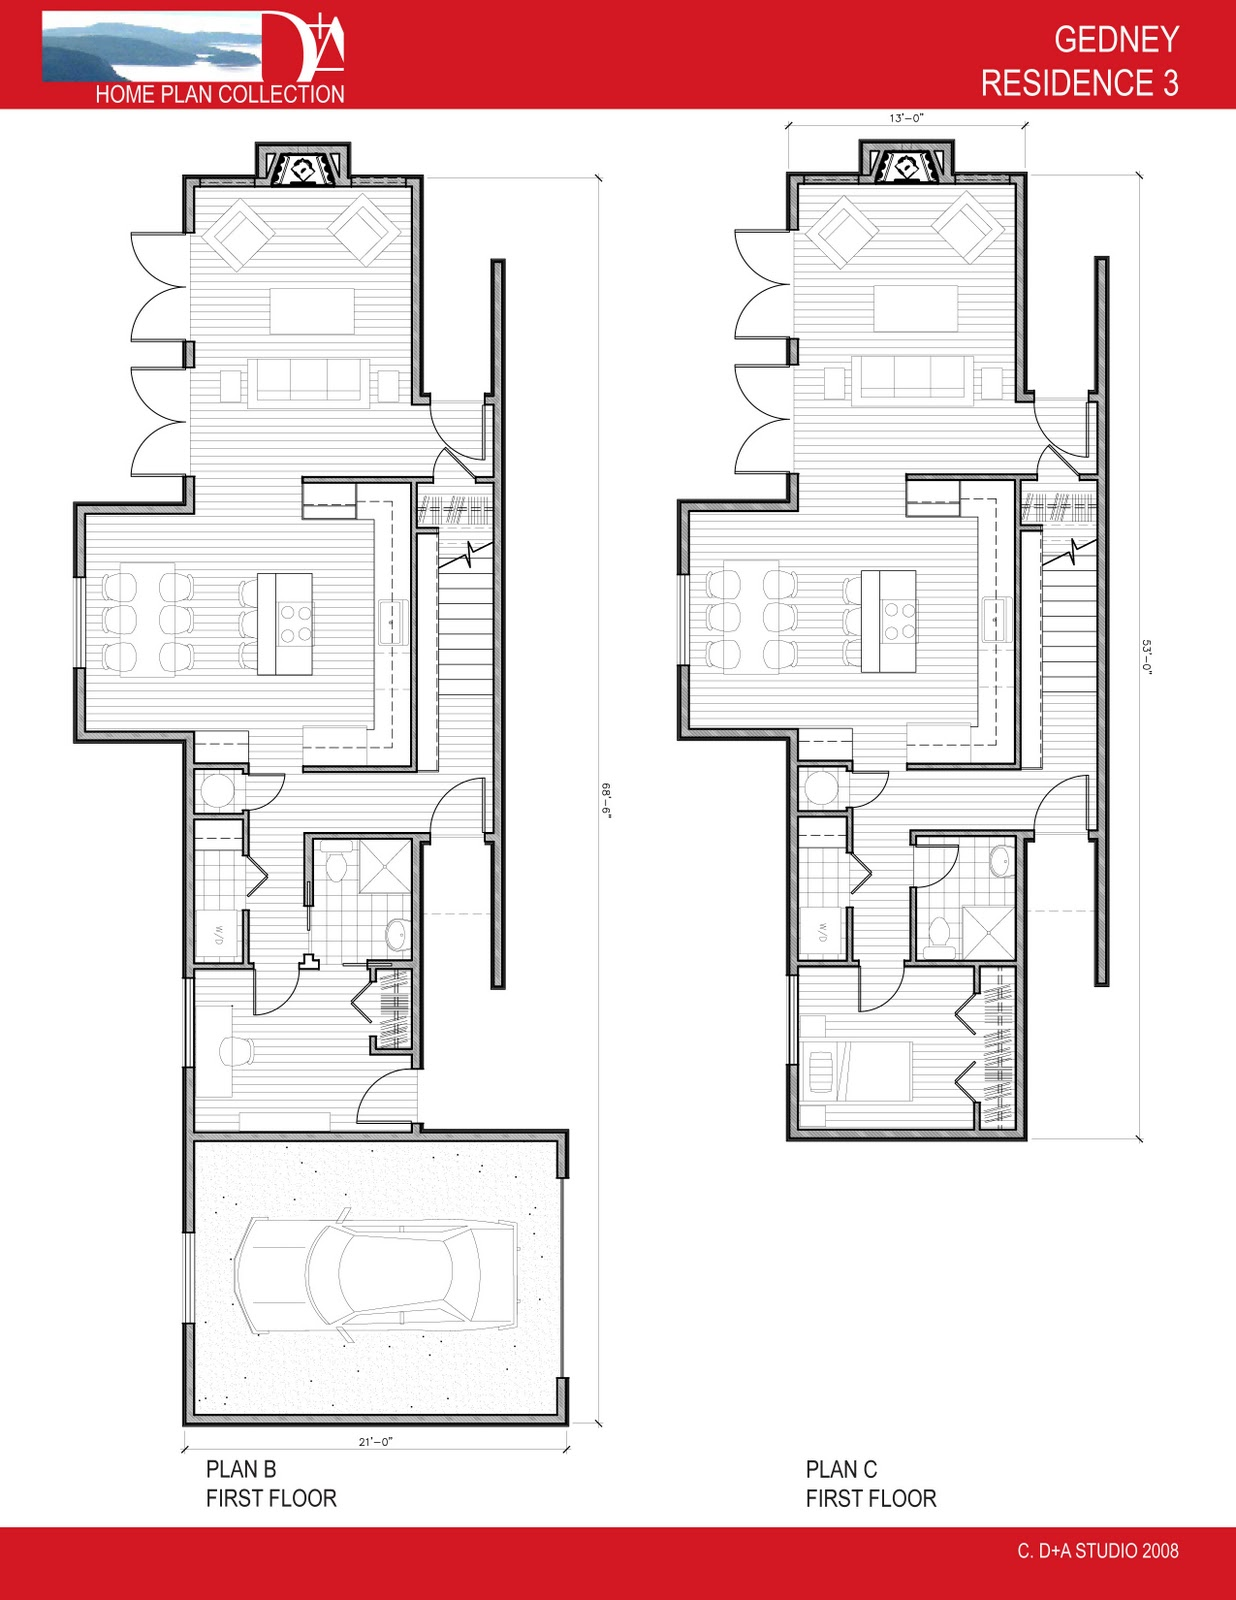 1000 sq ft floor plans house plans 1000 square 1000 sq ft ranch plans 22807